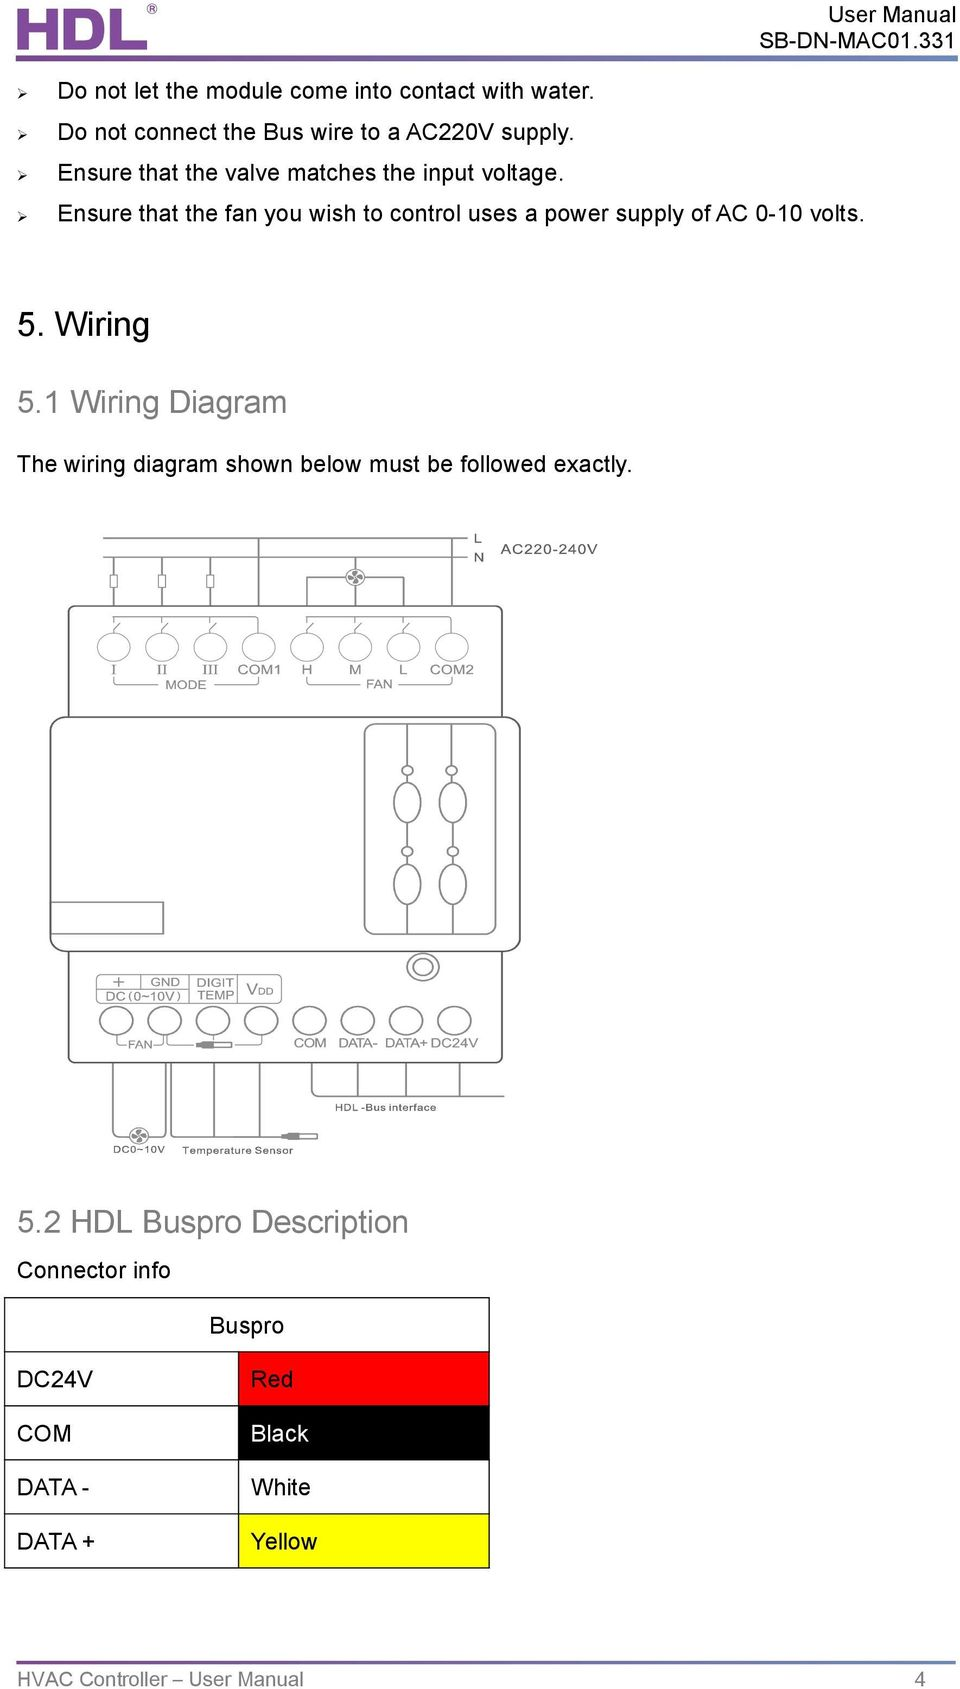 User Manual Air Conditioner Controller Sb Dn Hvac Mac01331 Pdf Dc Bus Wiring Diagrams Ensure That The Fan You Wish To Control Uses A Power Supply Of Ac 0